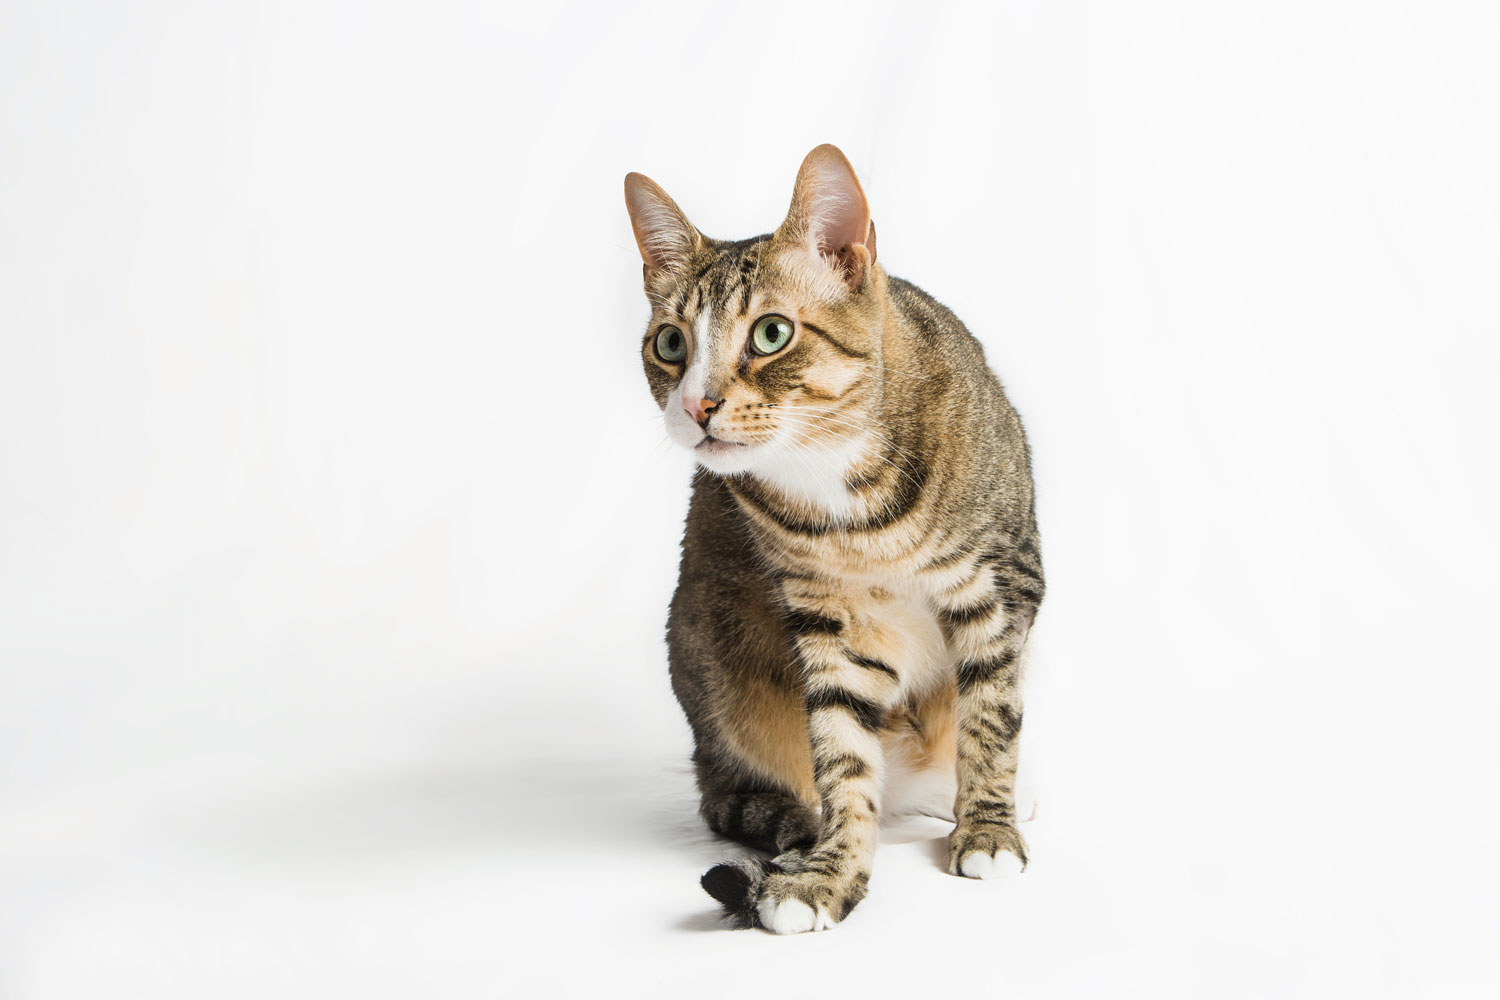 colorado-pet-portraits-cats-in-studio_010.jpg